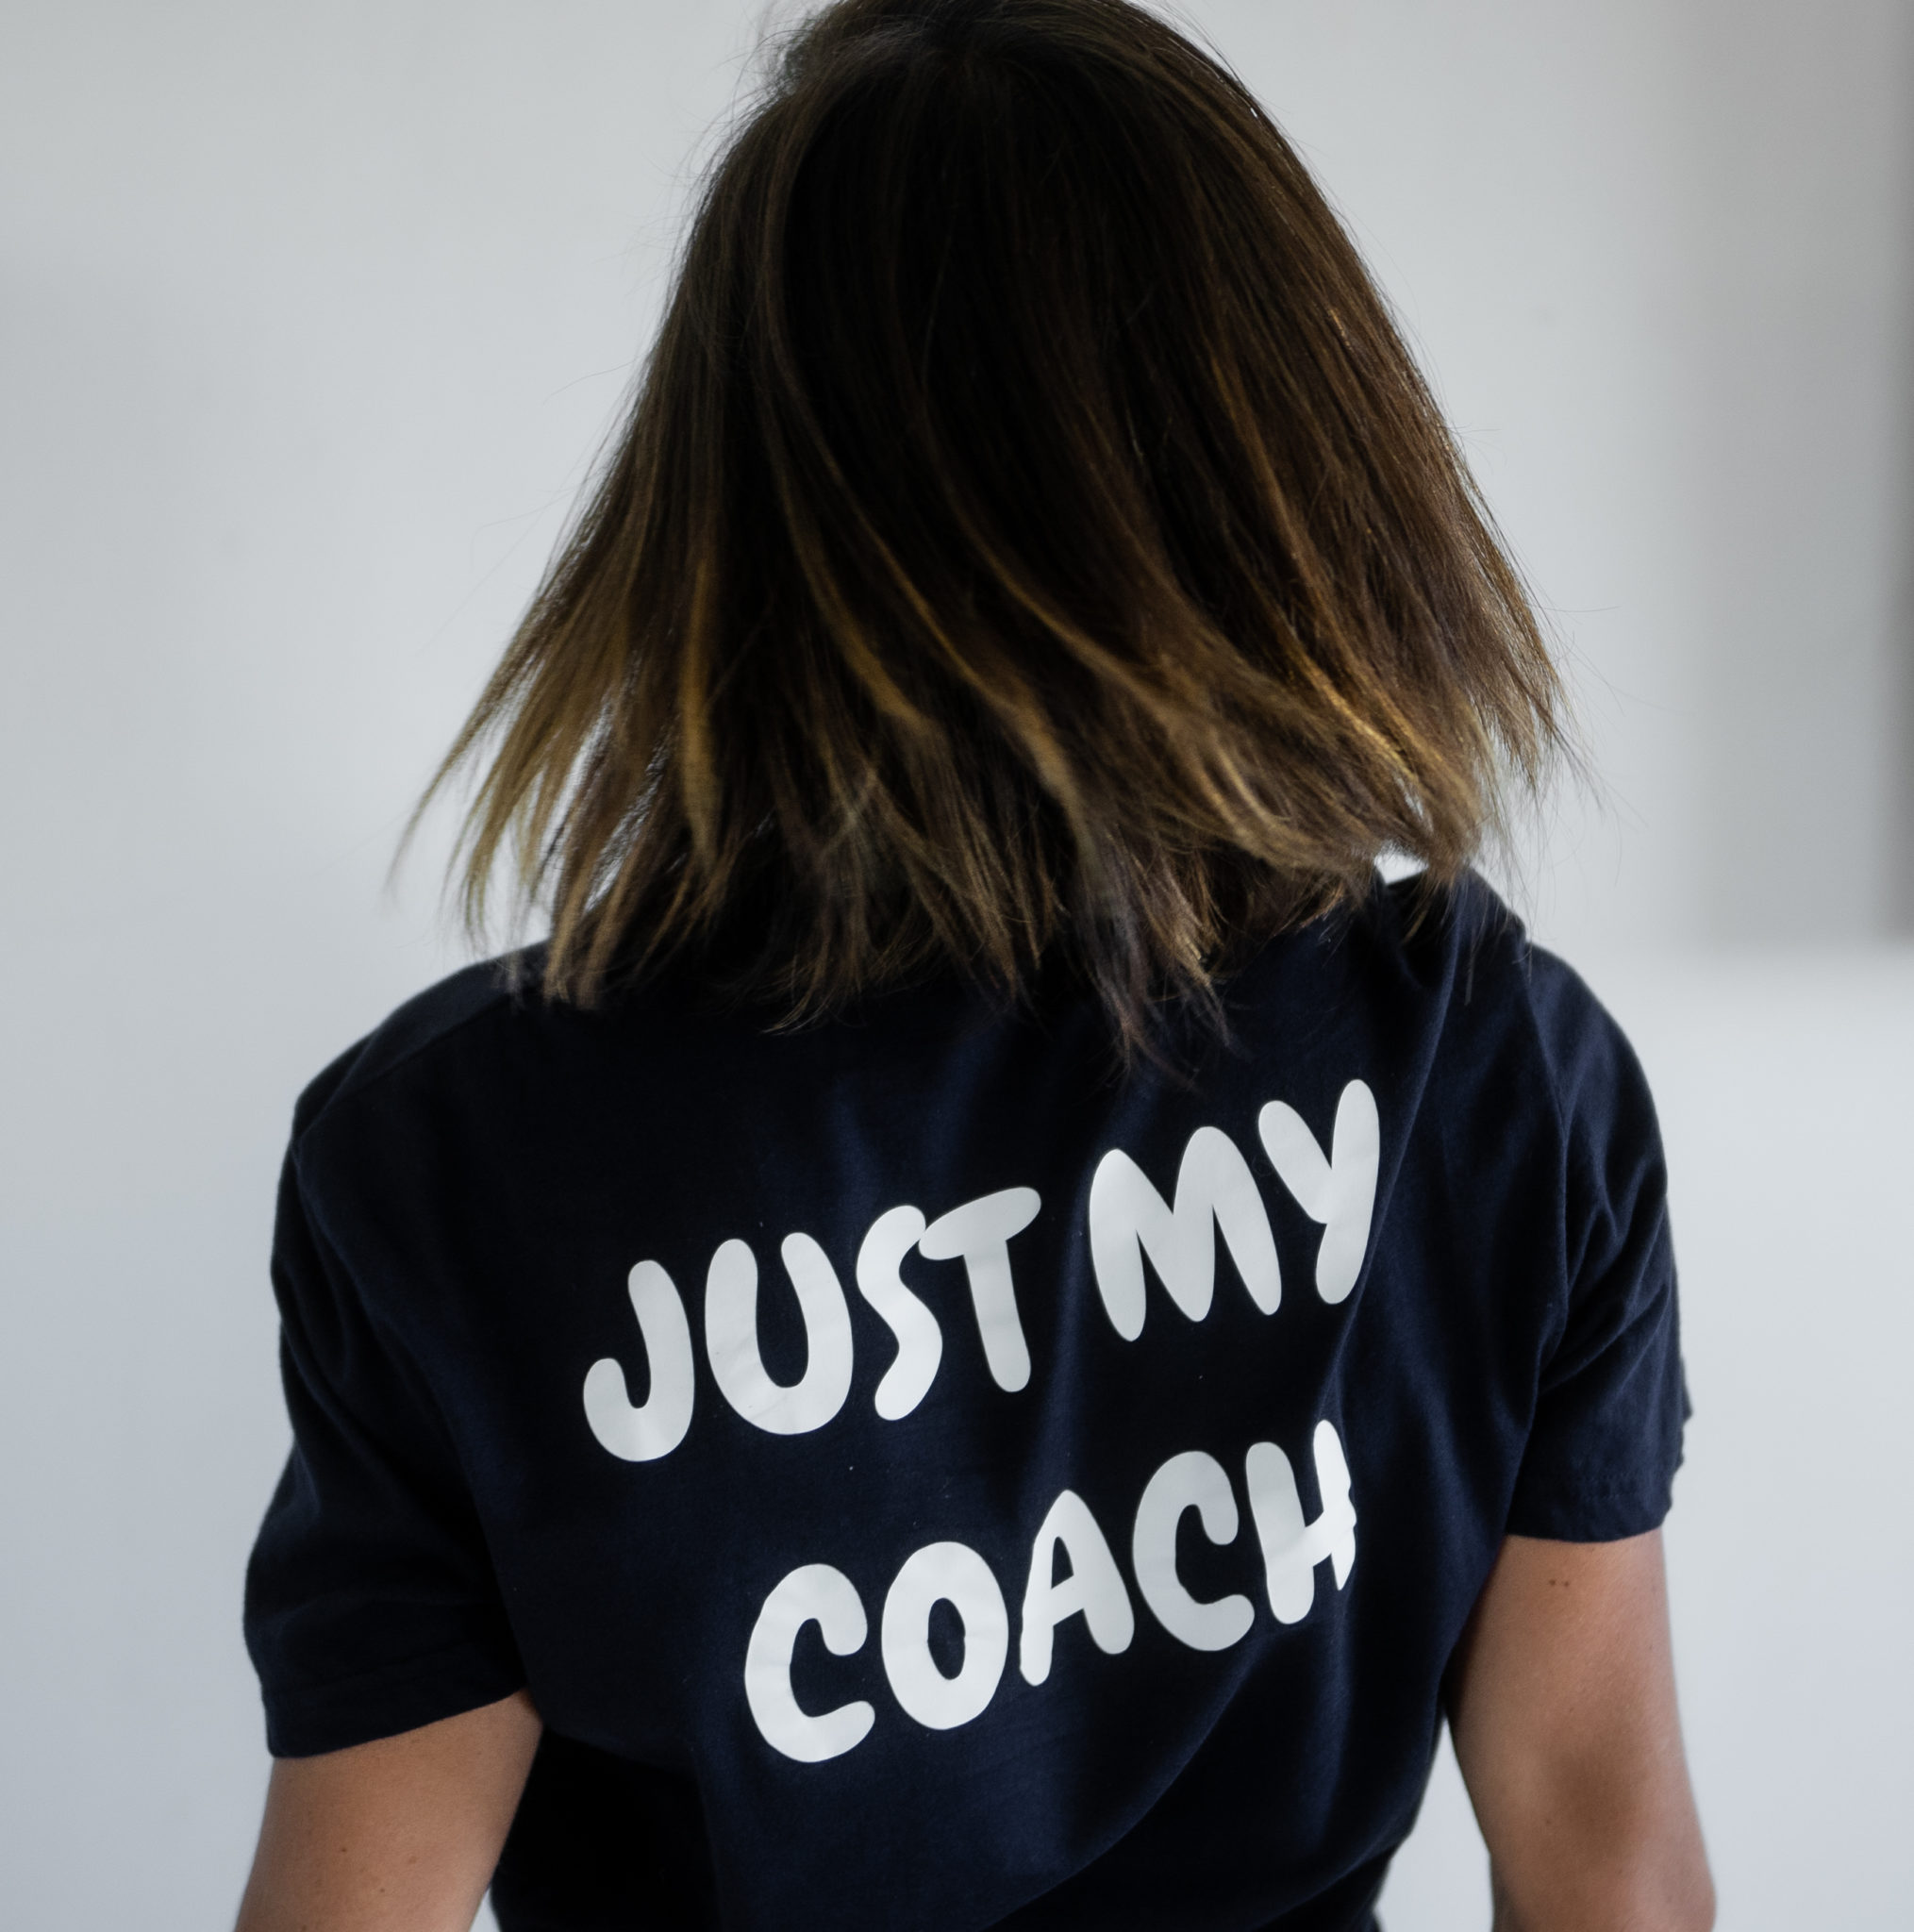 just my coach annecy